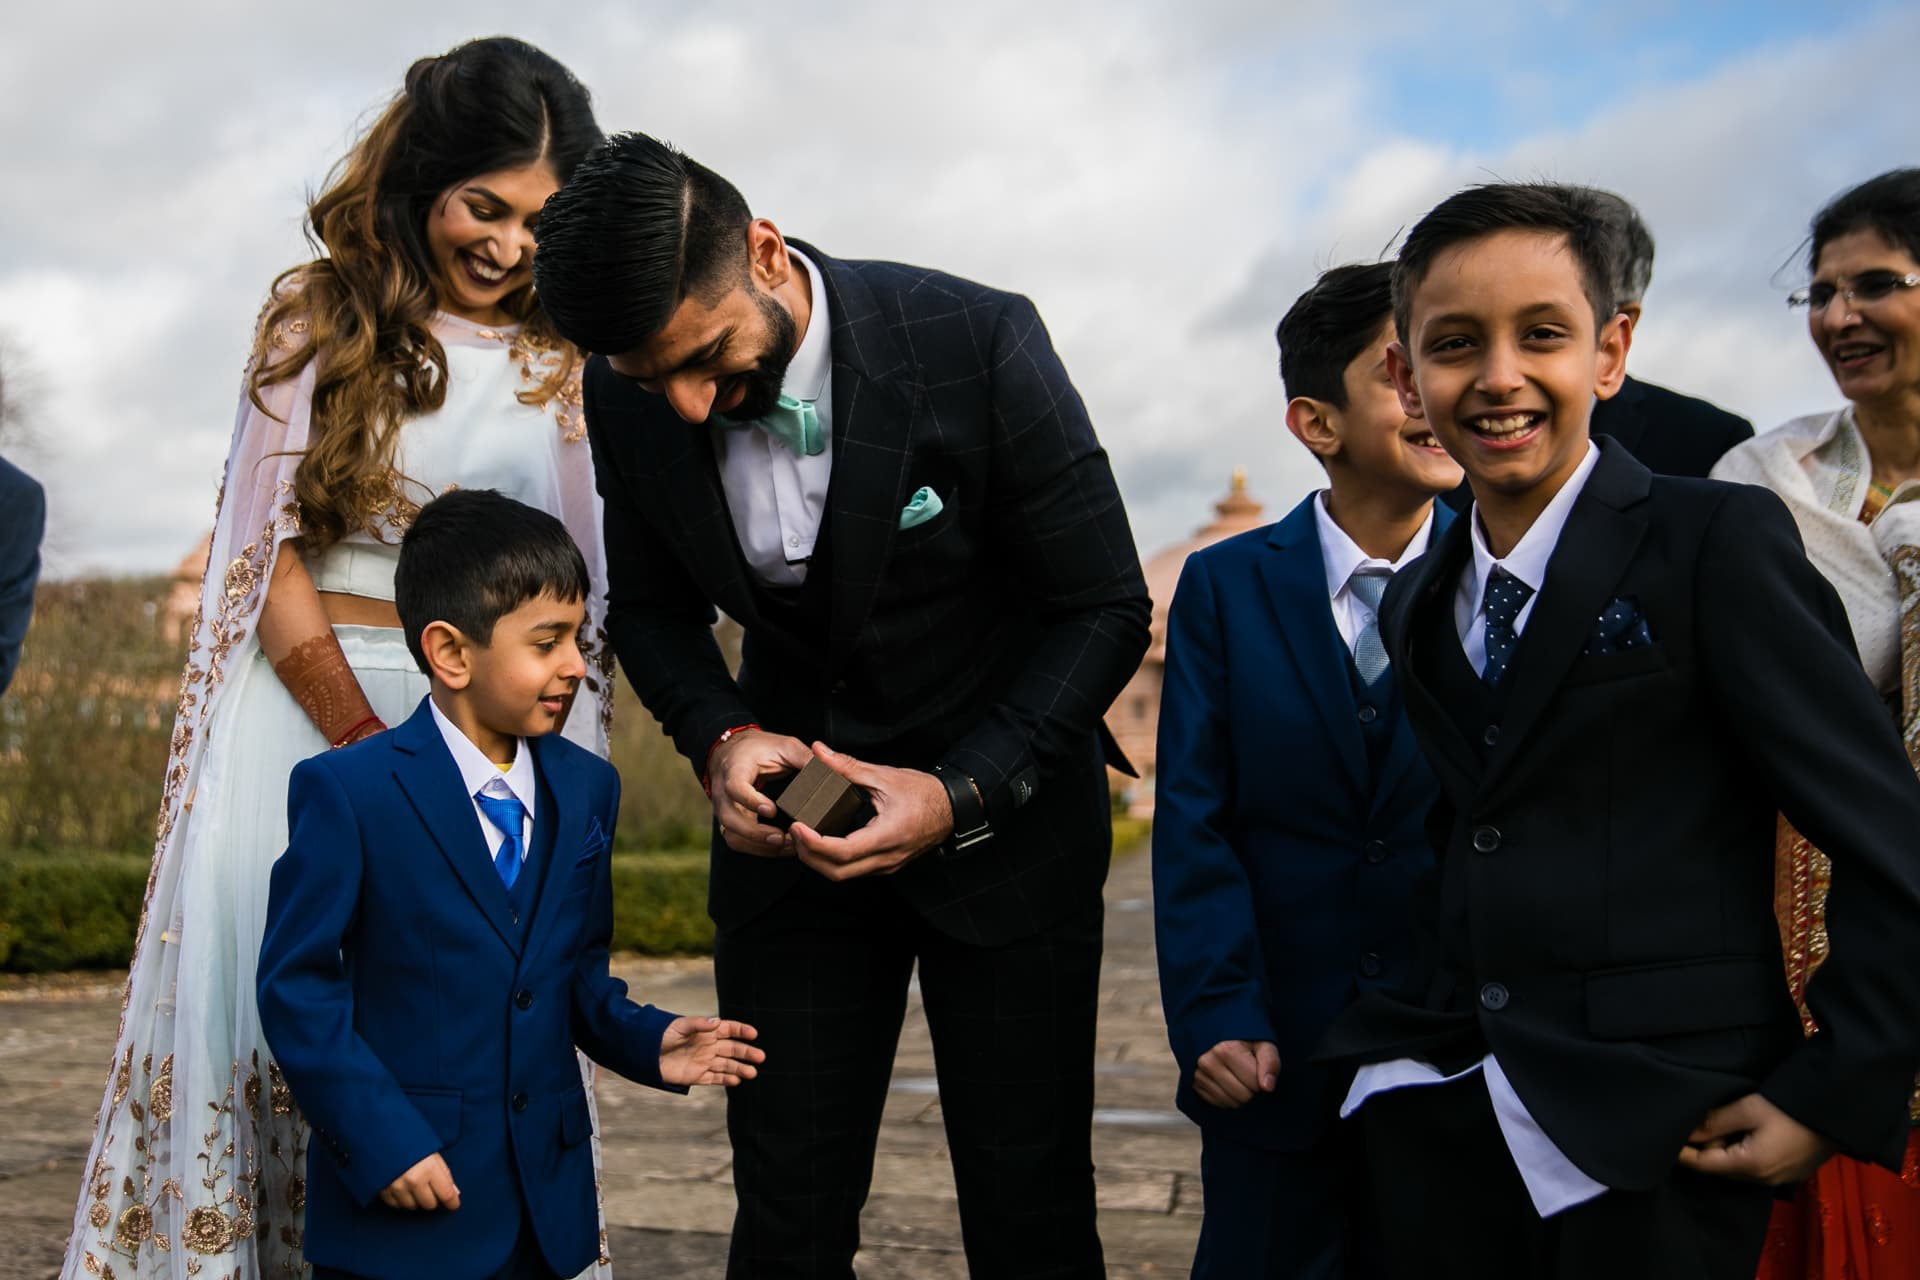 Civil Ceremony at Oshwal centre Potters Bar, UK